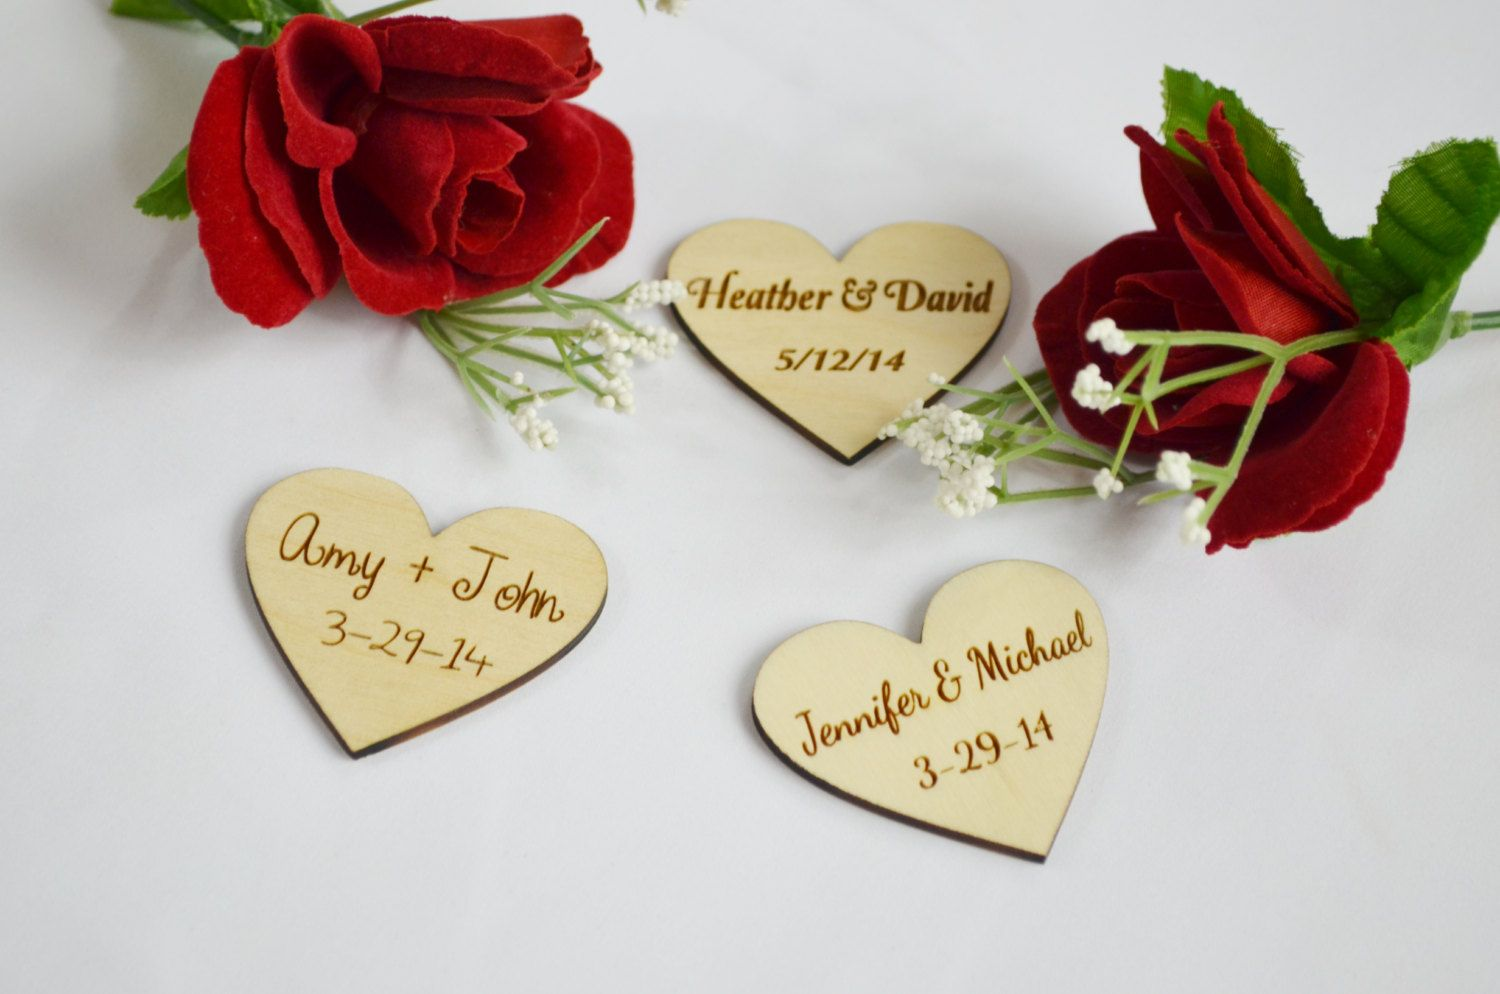 Personalized Wooden Hearts Wedding Favors Engraved By Xcaliburink